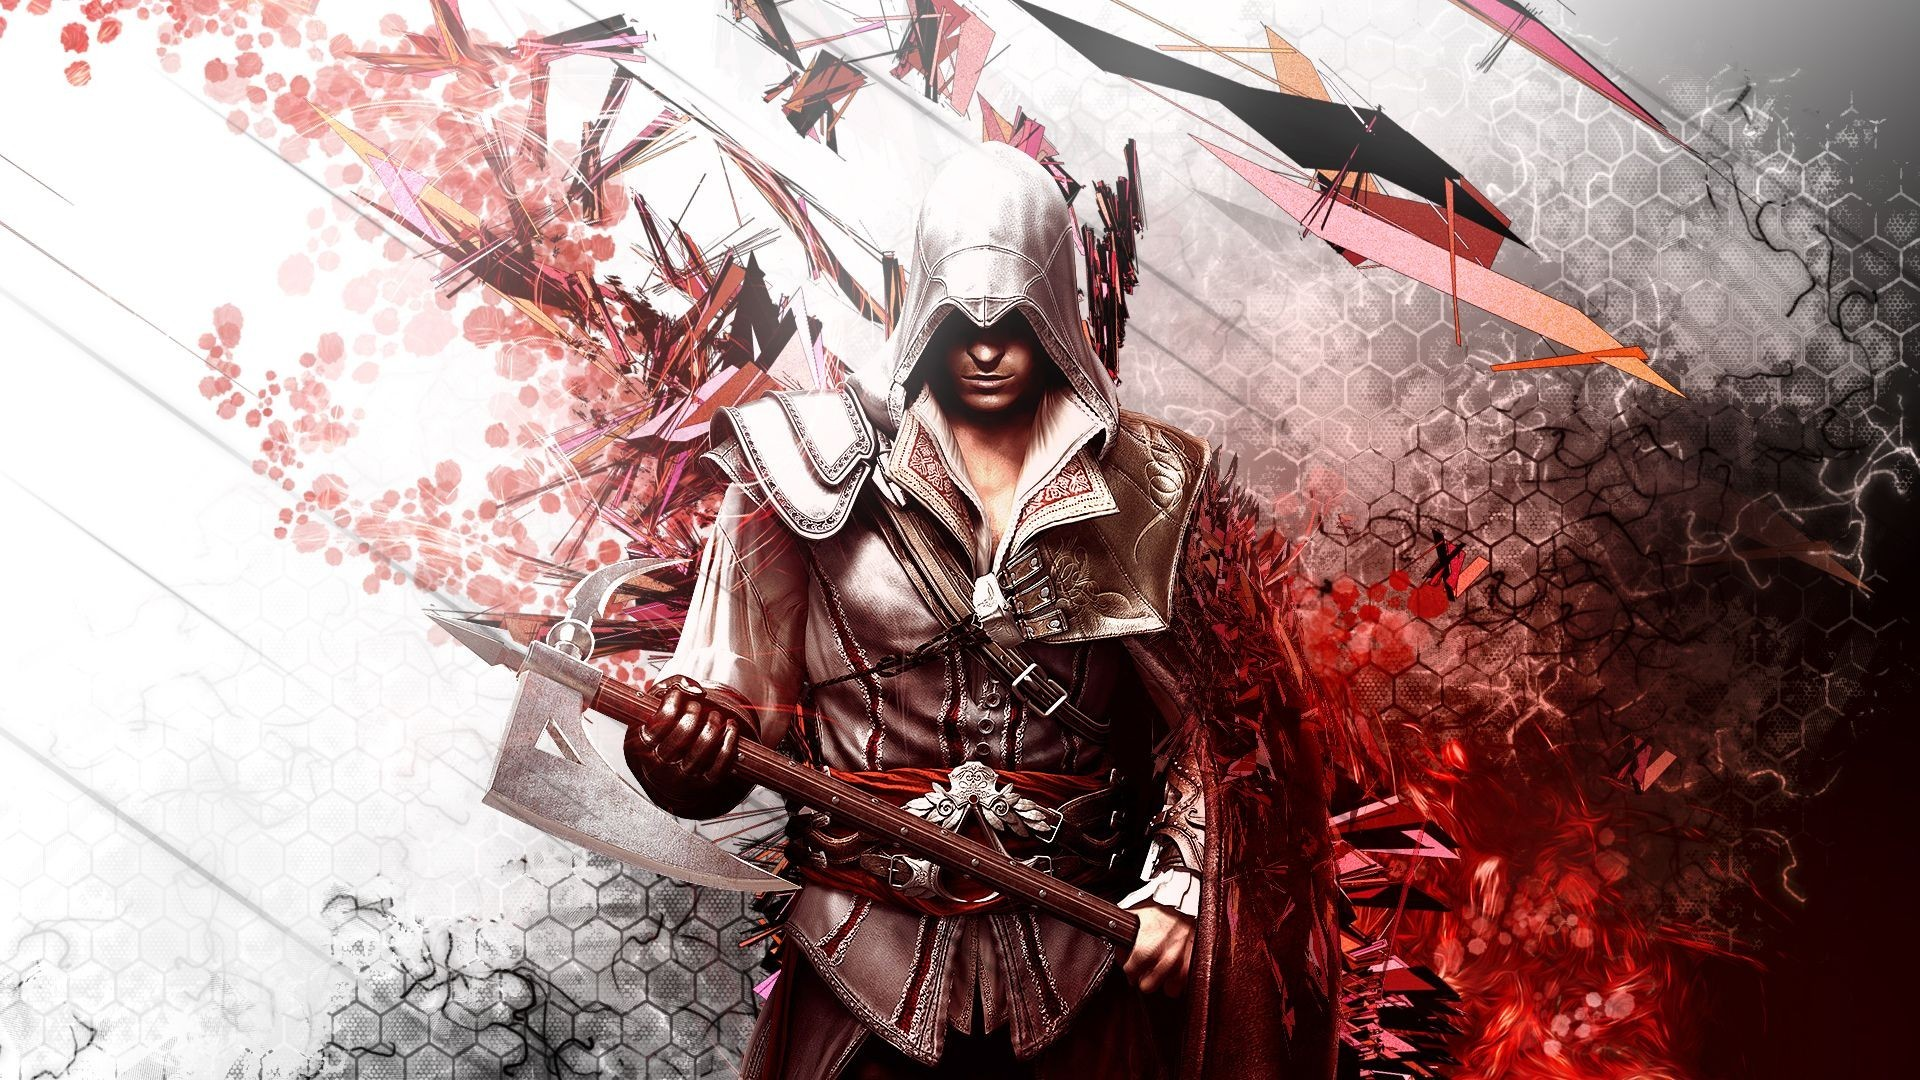 Assassins Creed wallpapers   Blog by mikeerik   IGN 1920x1080